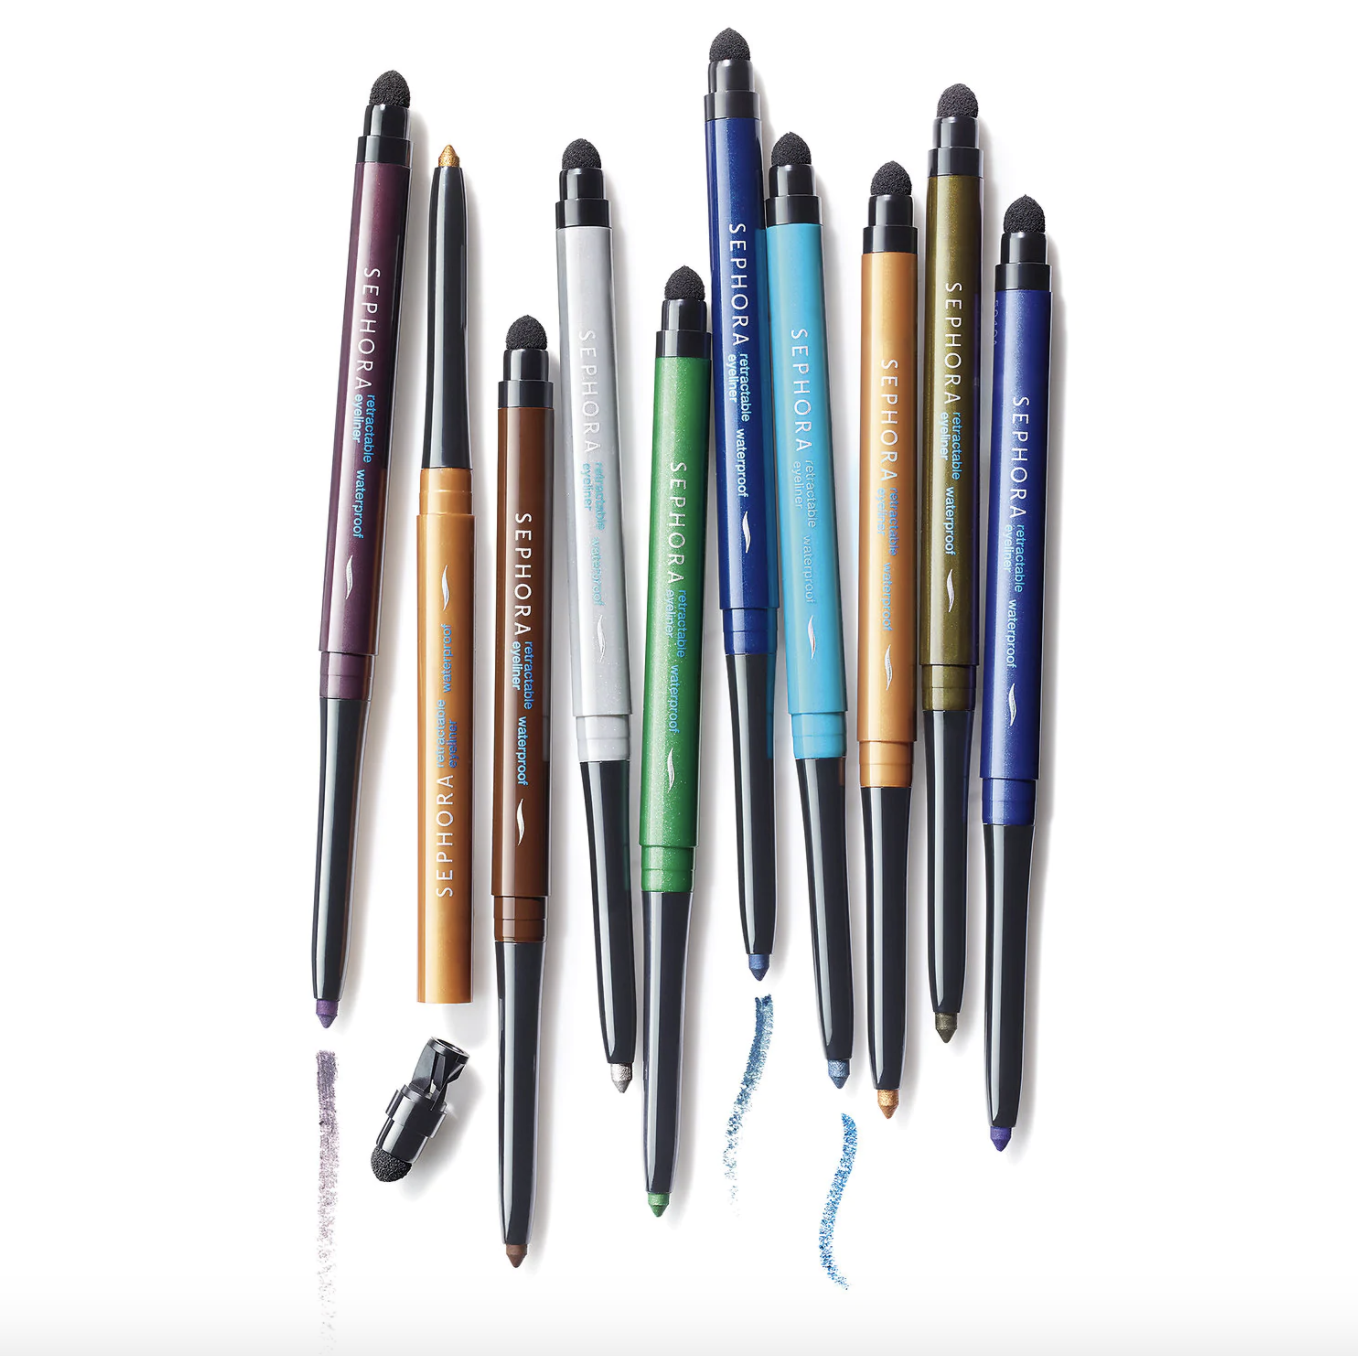 The eyeliners in various colors